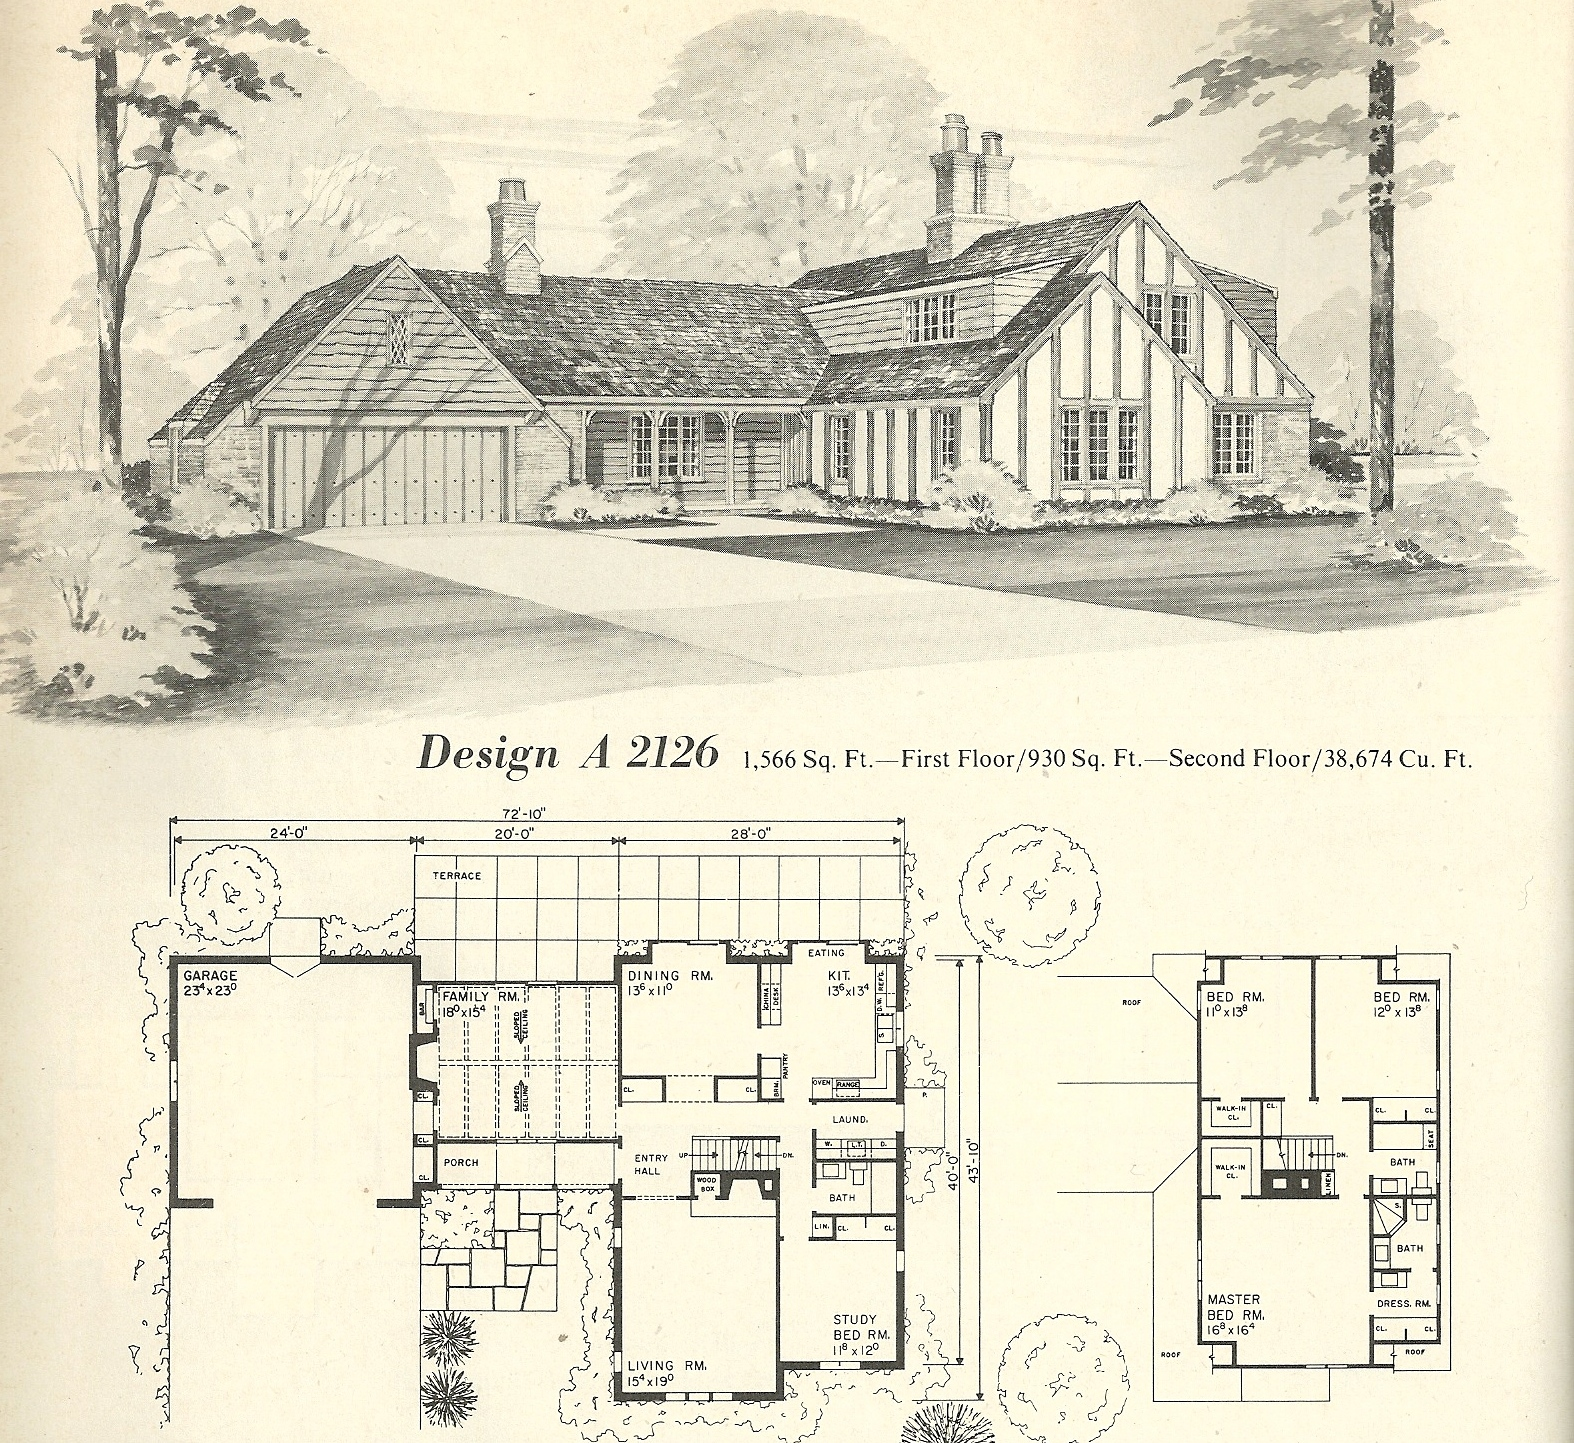 vintage house plans 2126 antique alter ego On antique house floor plans